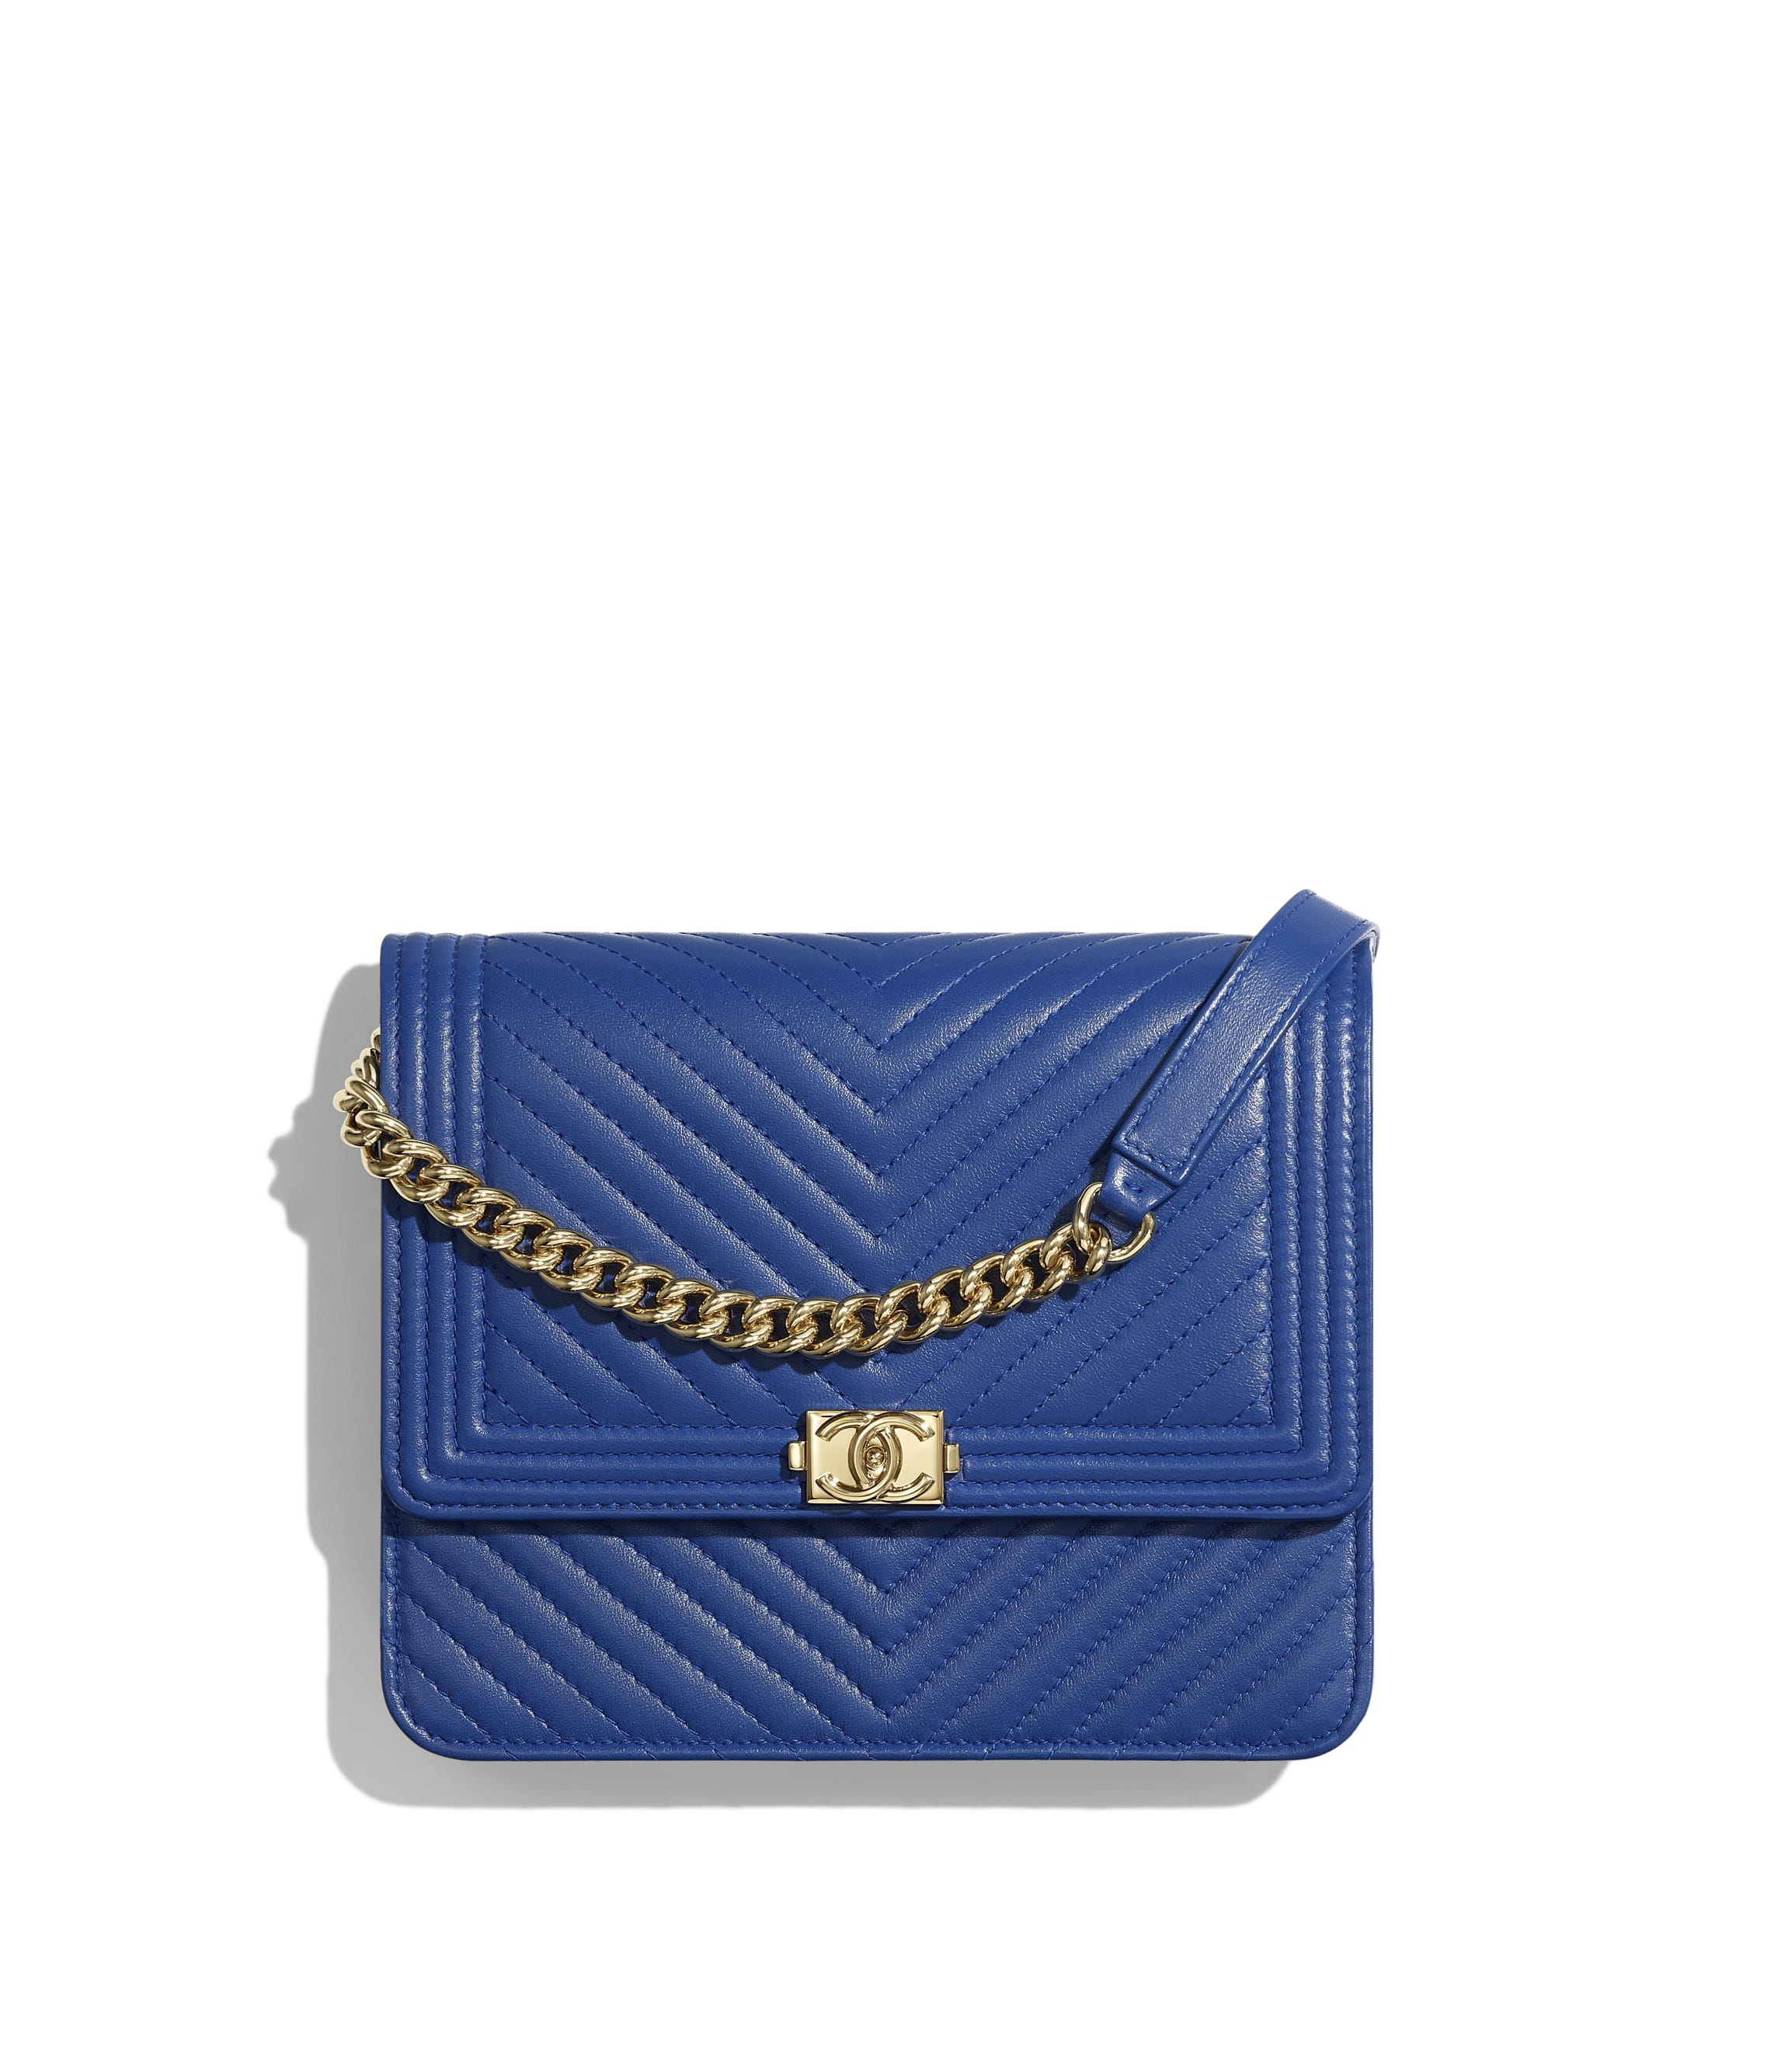 37200079a632 Clutches with Chain - Small Leather Goods - CHANEL